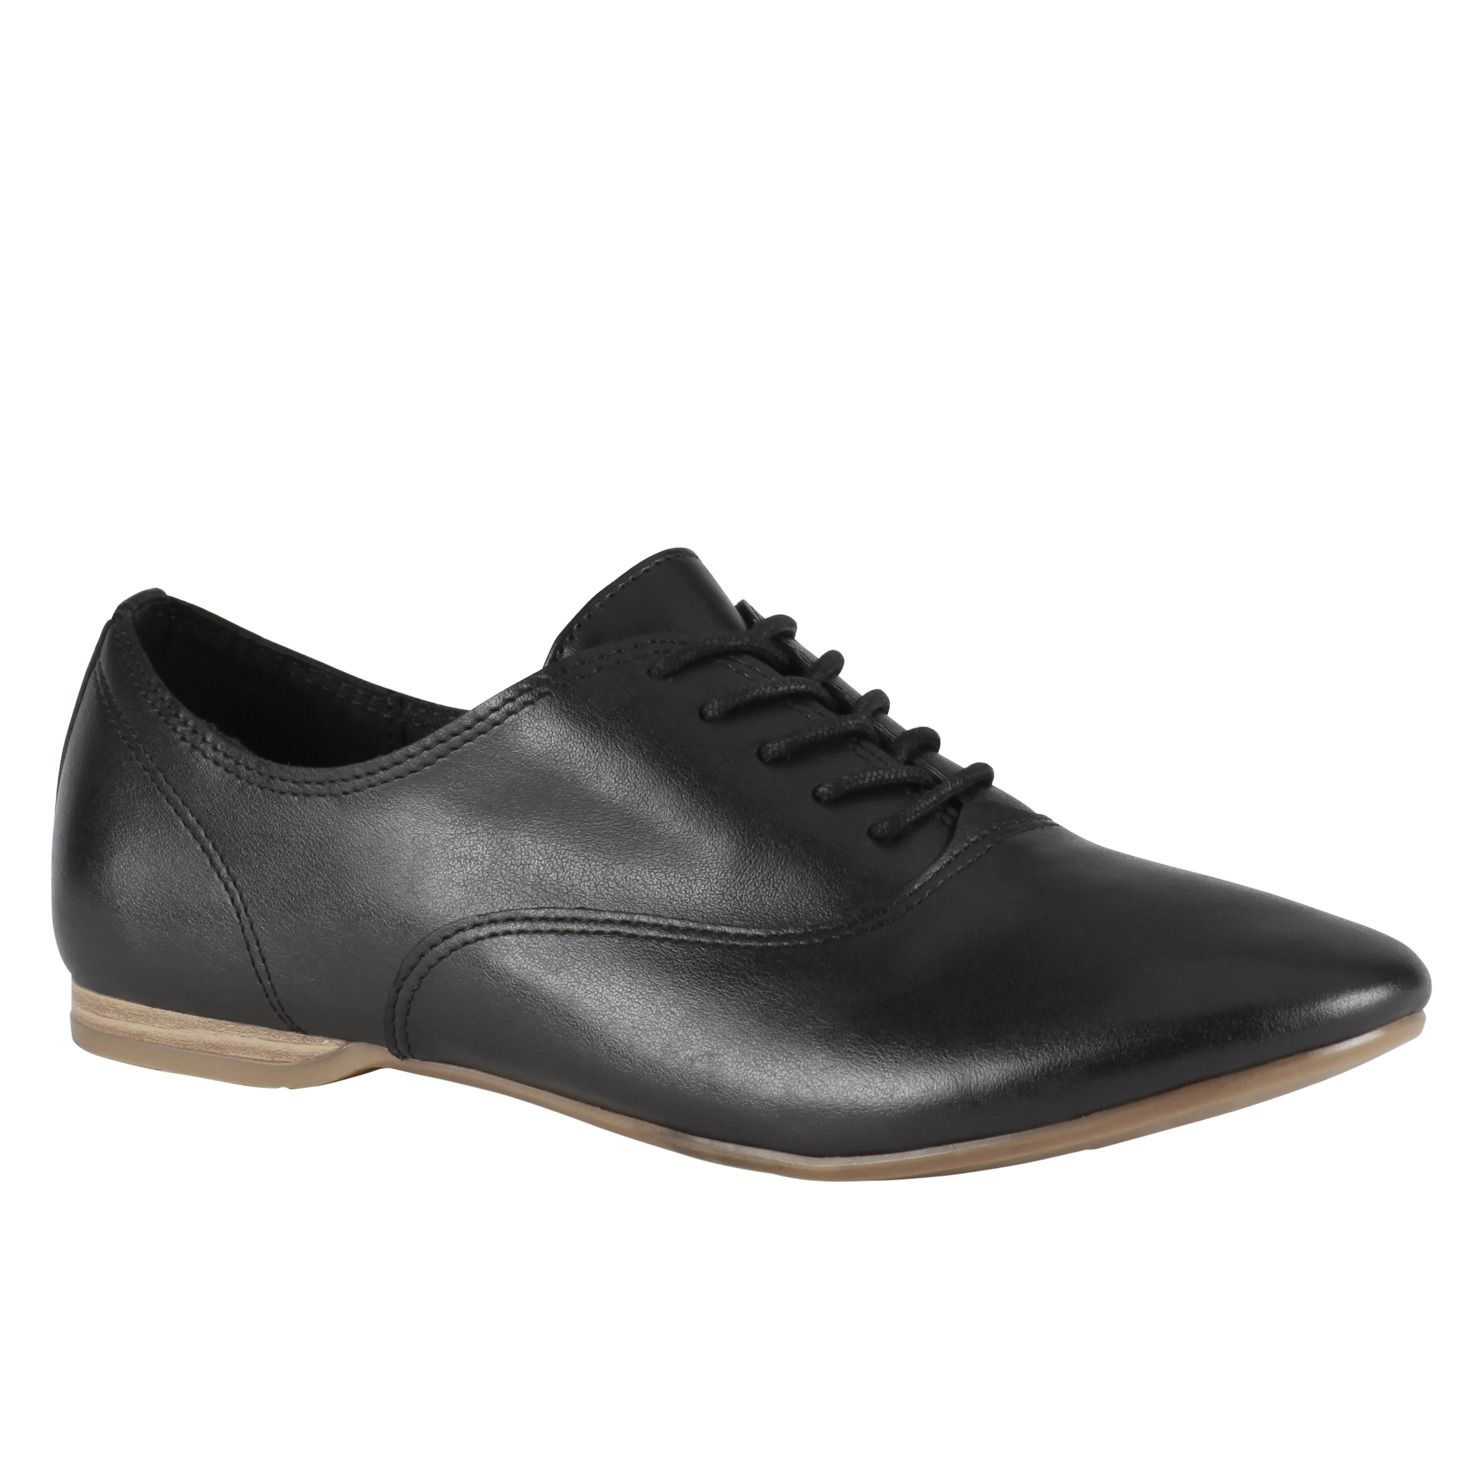 CORERIEN - women's oxfords & loafers shoes for sale at ALDO ...